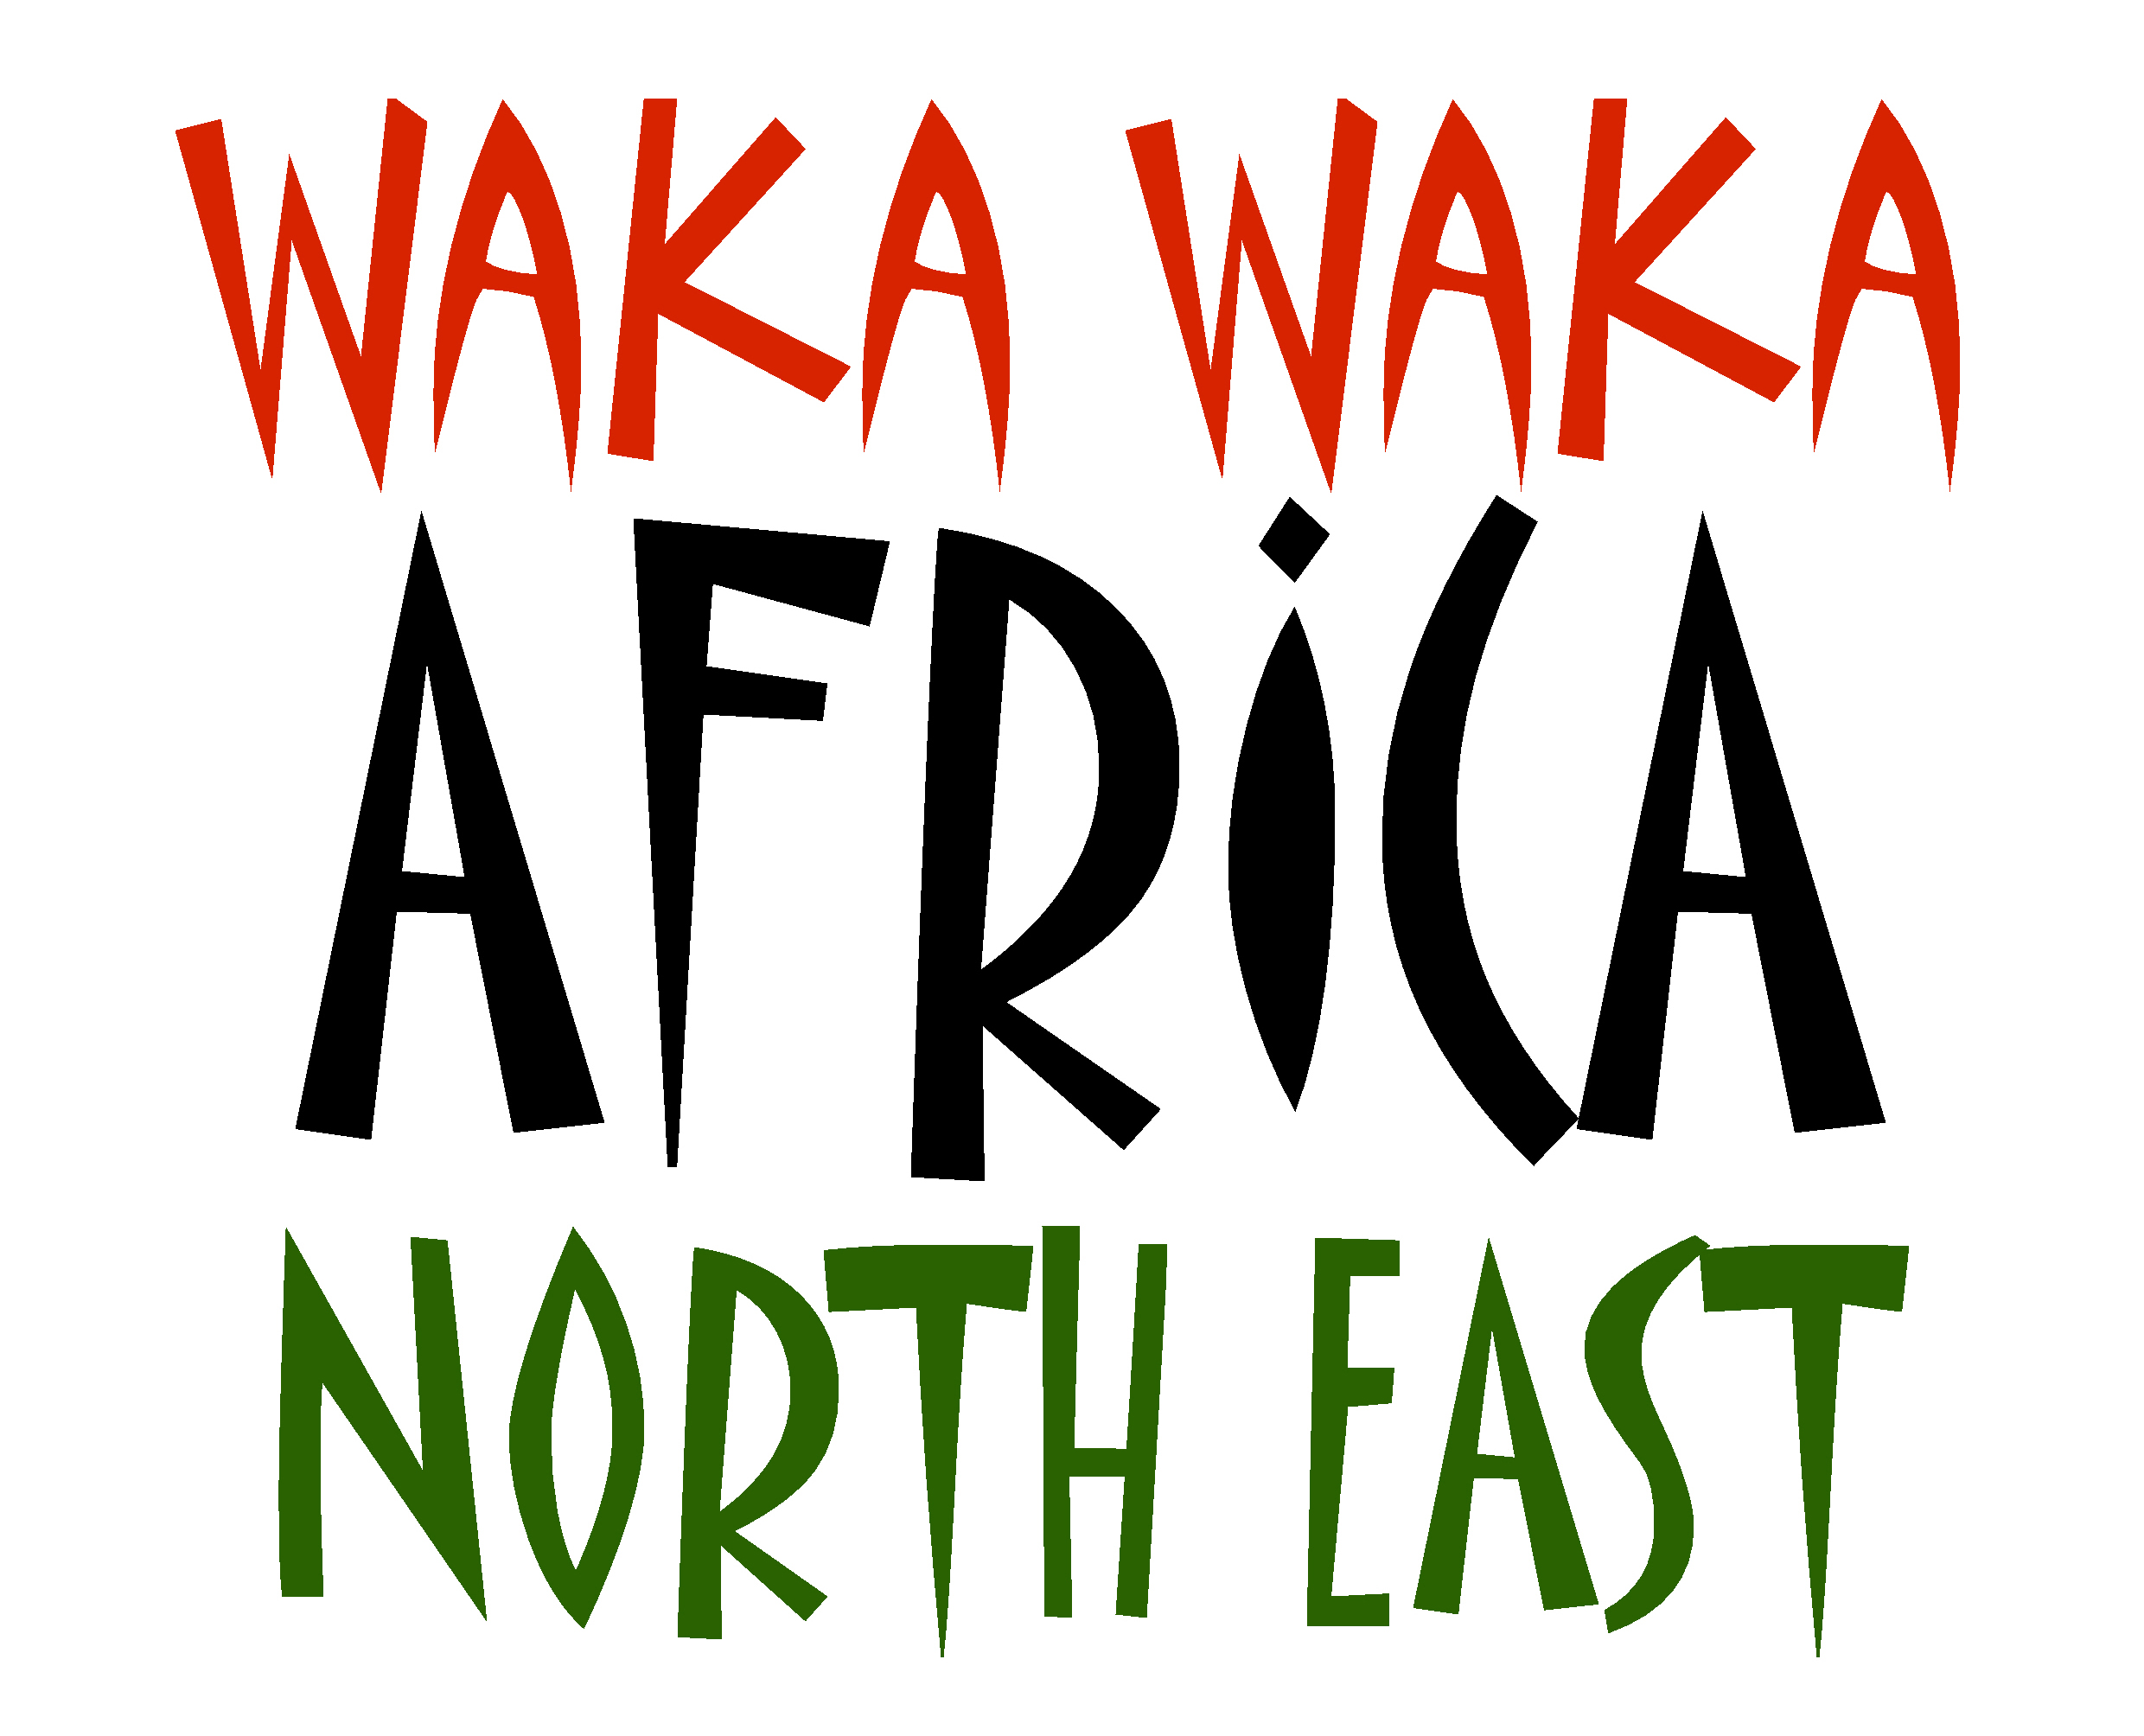 Waka Waka Africa North East.